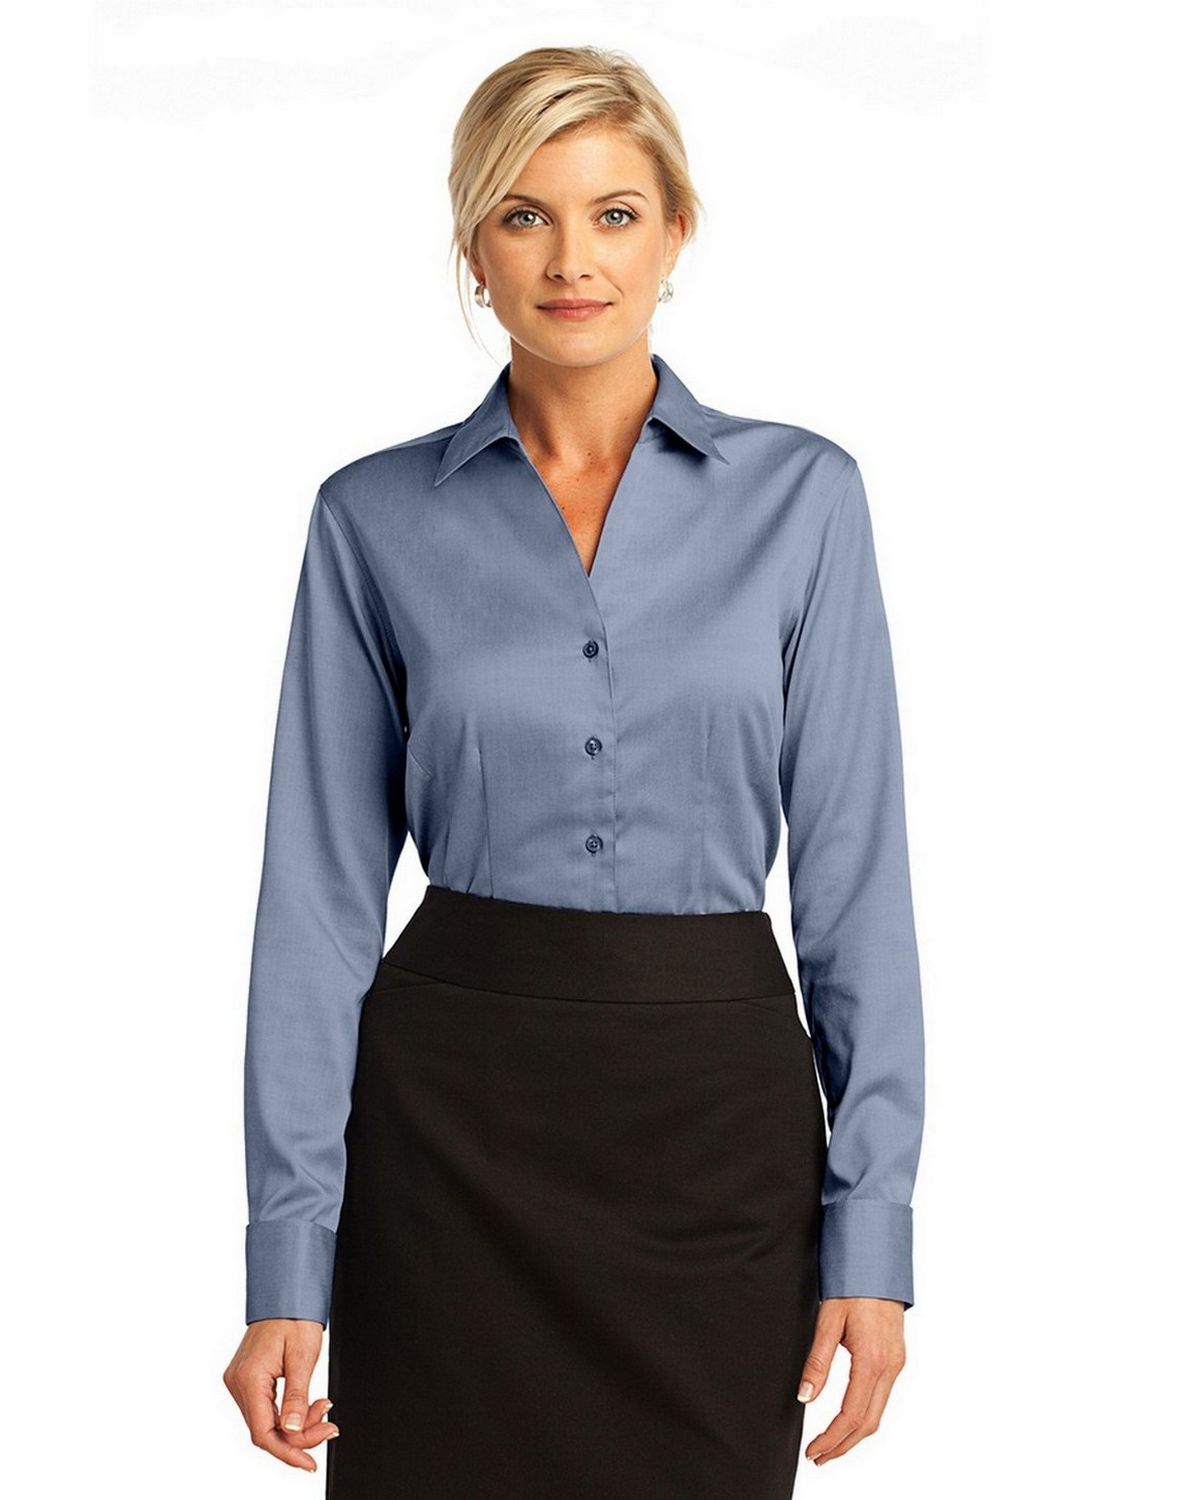 Red house rh63 ladies fitted non iron pinpoint oxford for Ladies non iron shirts